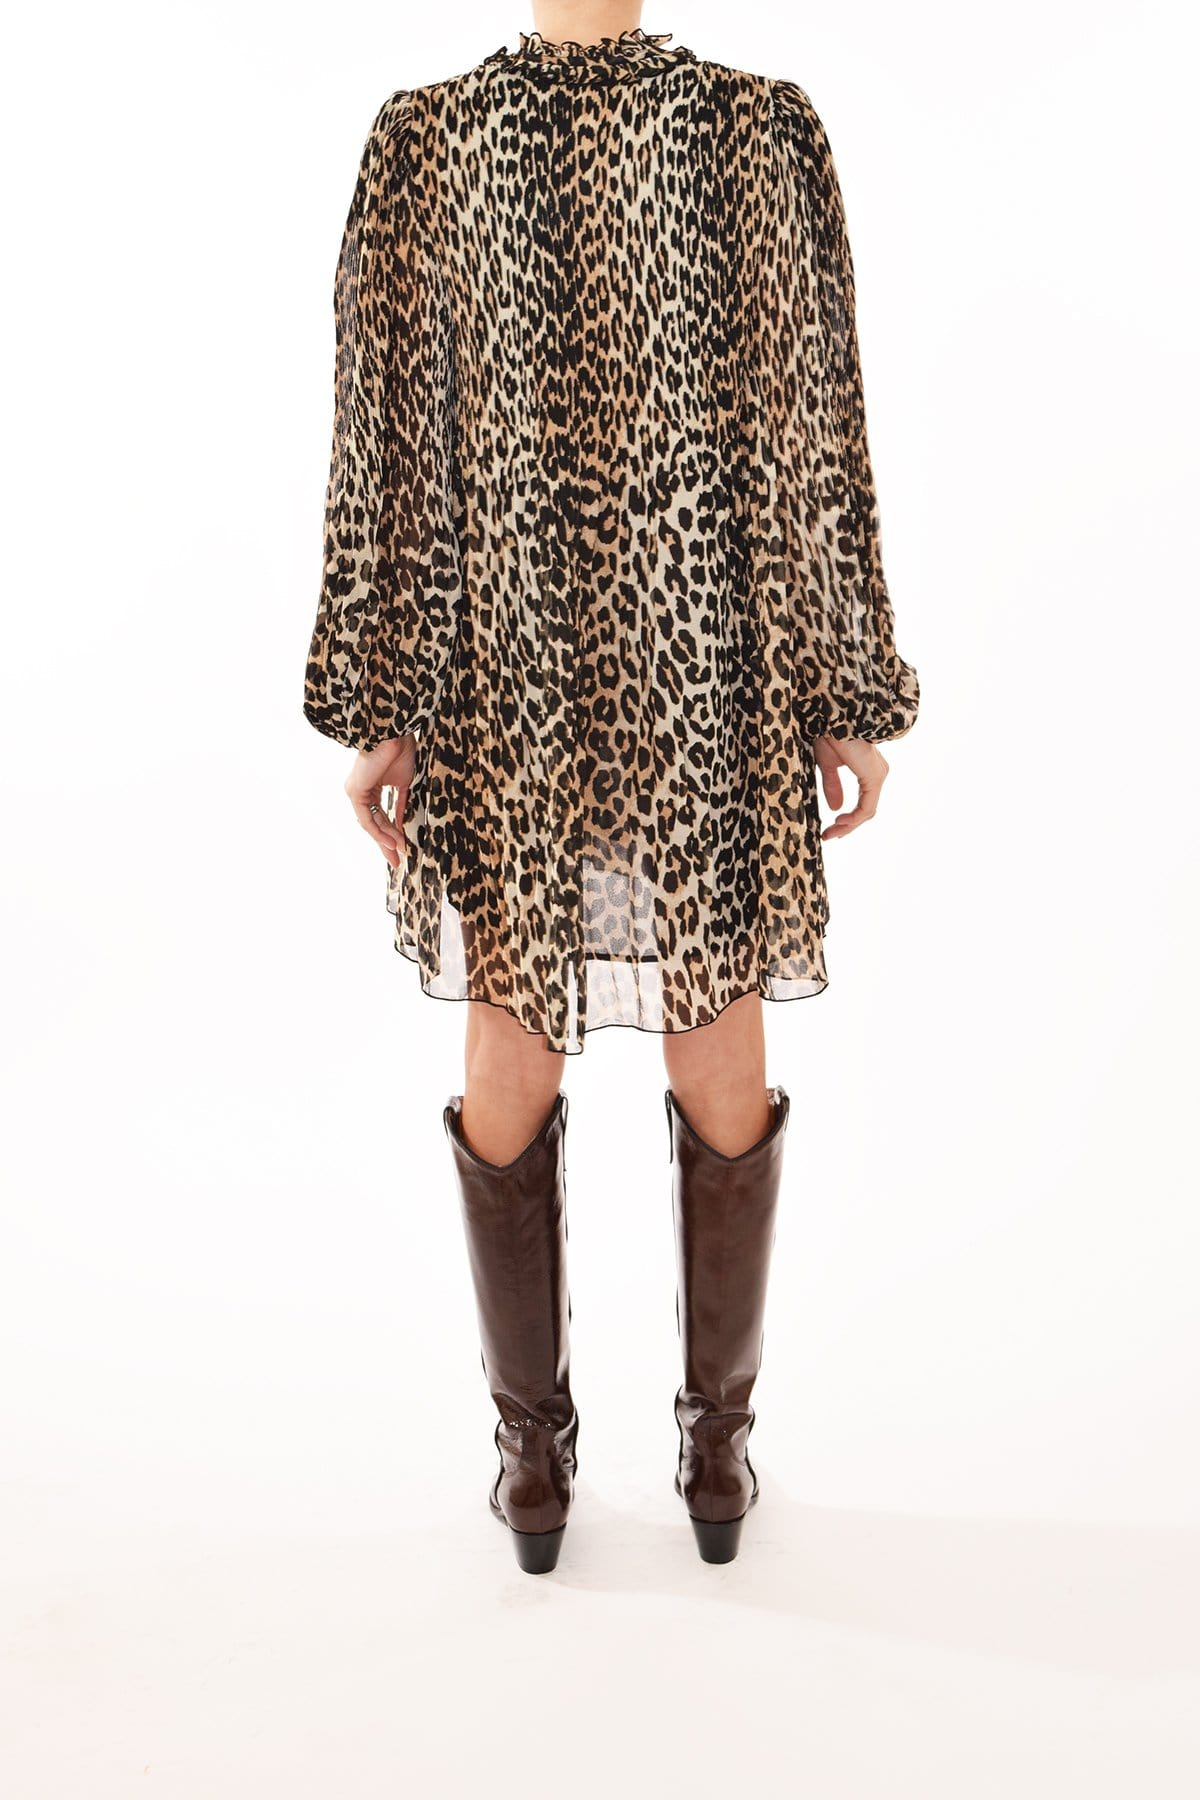 Short Collared Georgette Keyhole Pleated Animal Leopard Print Dress With Ruffles